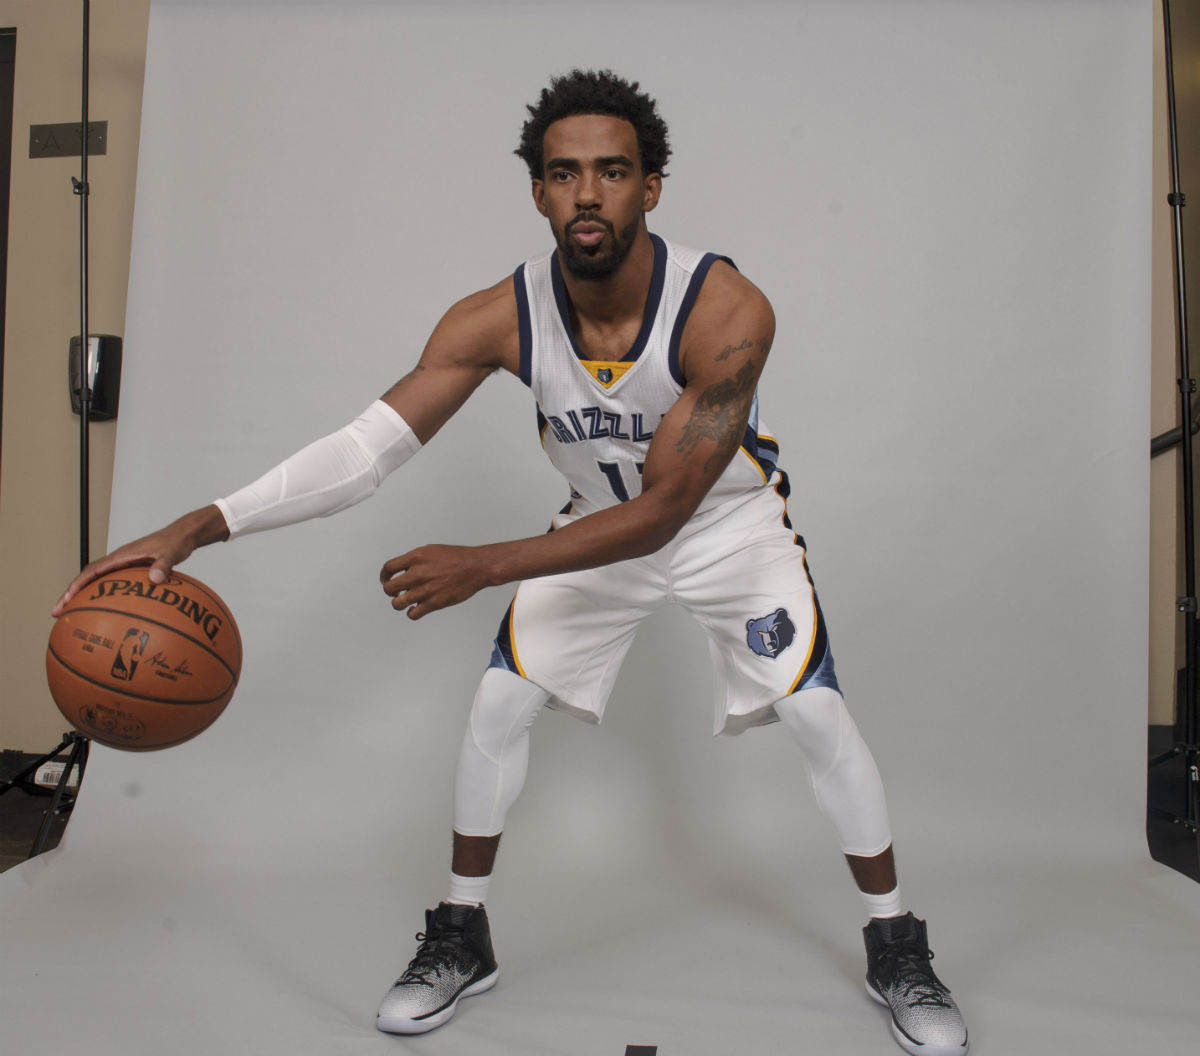 lowest price a6730 7e4b2 Mike Conley Signs with Jordan Brand | Sole Collector